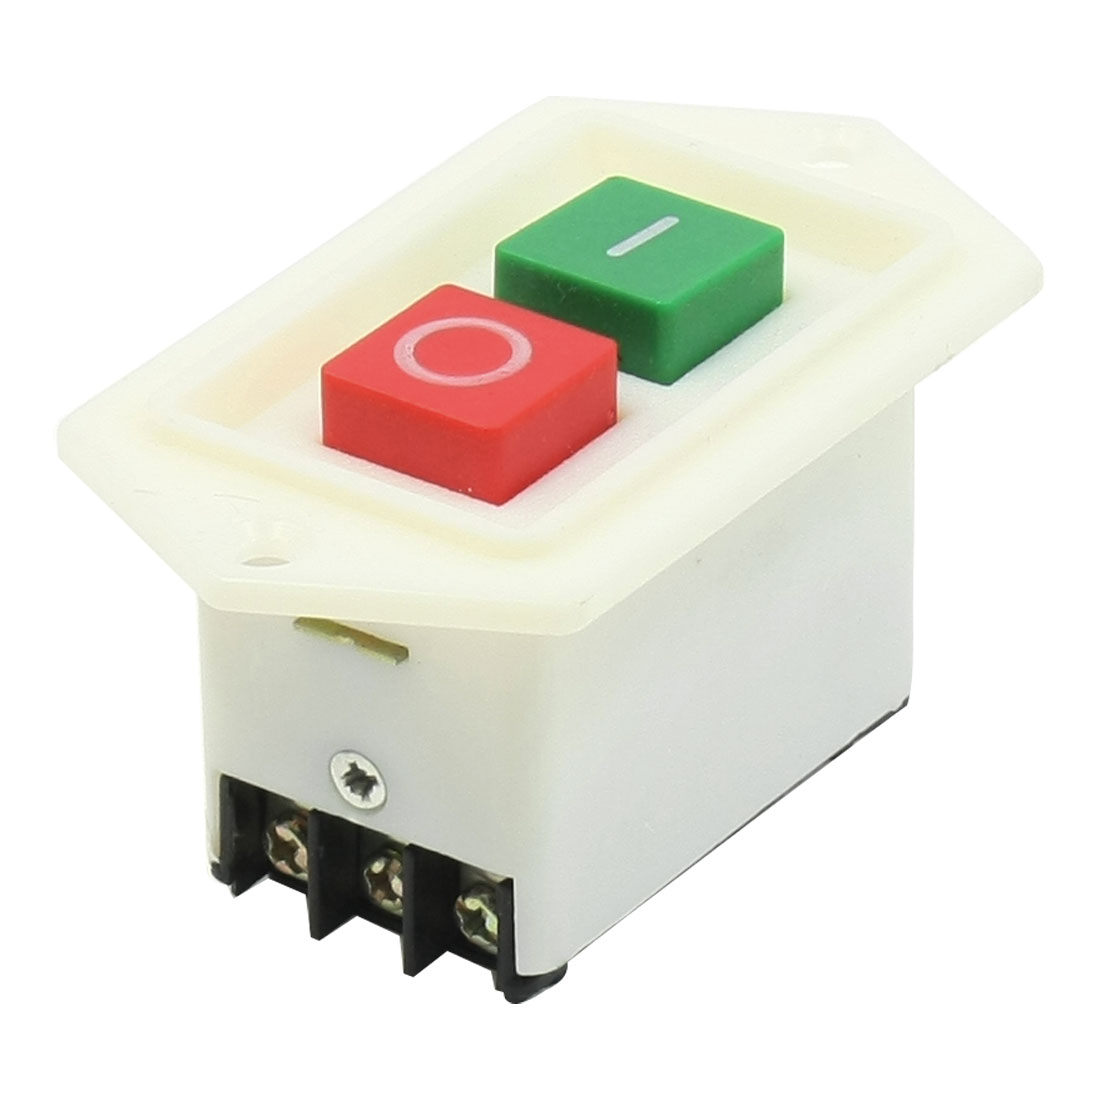 AC 380V 10A 2 Button DPDT I/O Self Locking Panel Mount Pushbutton Switch